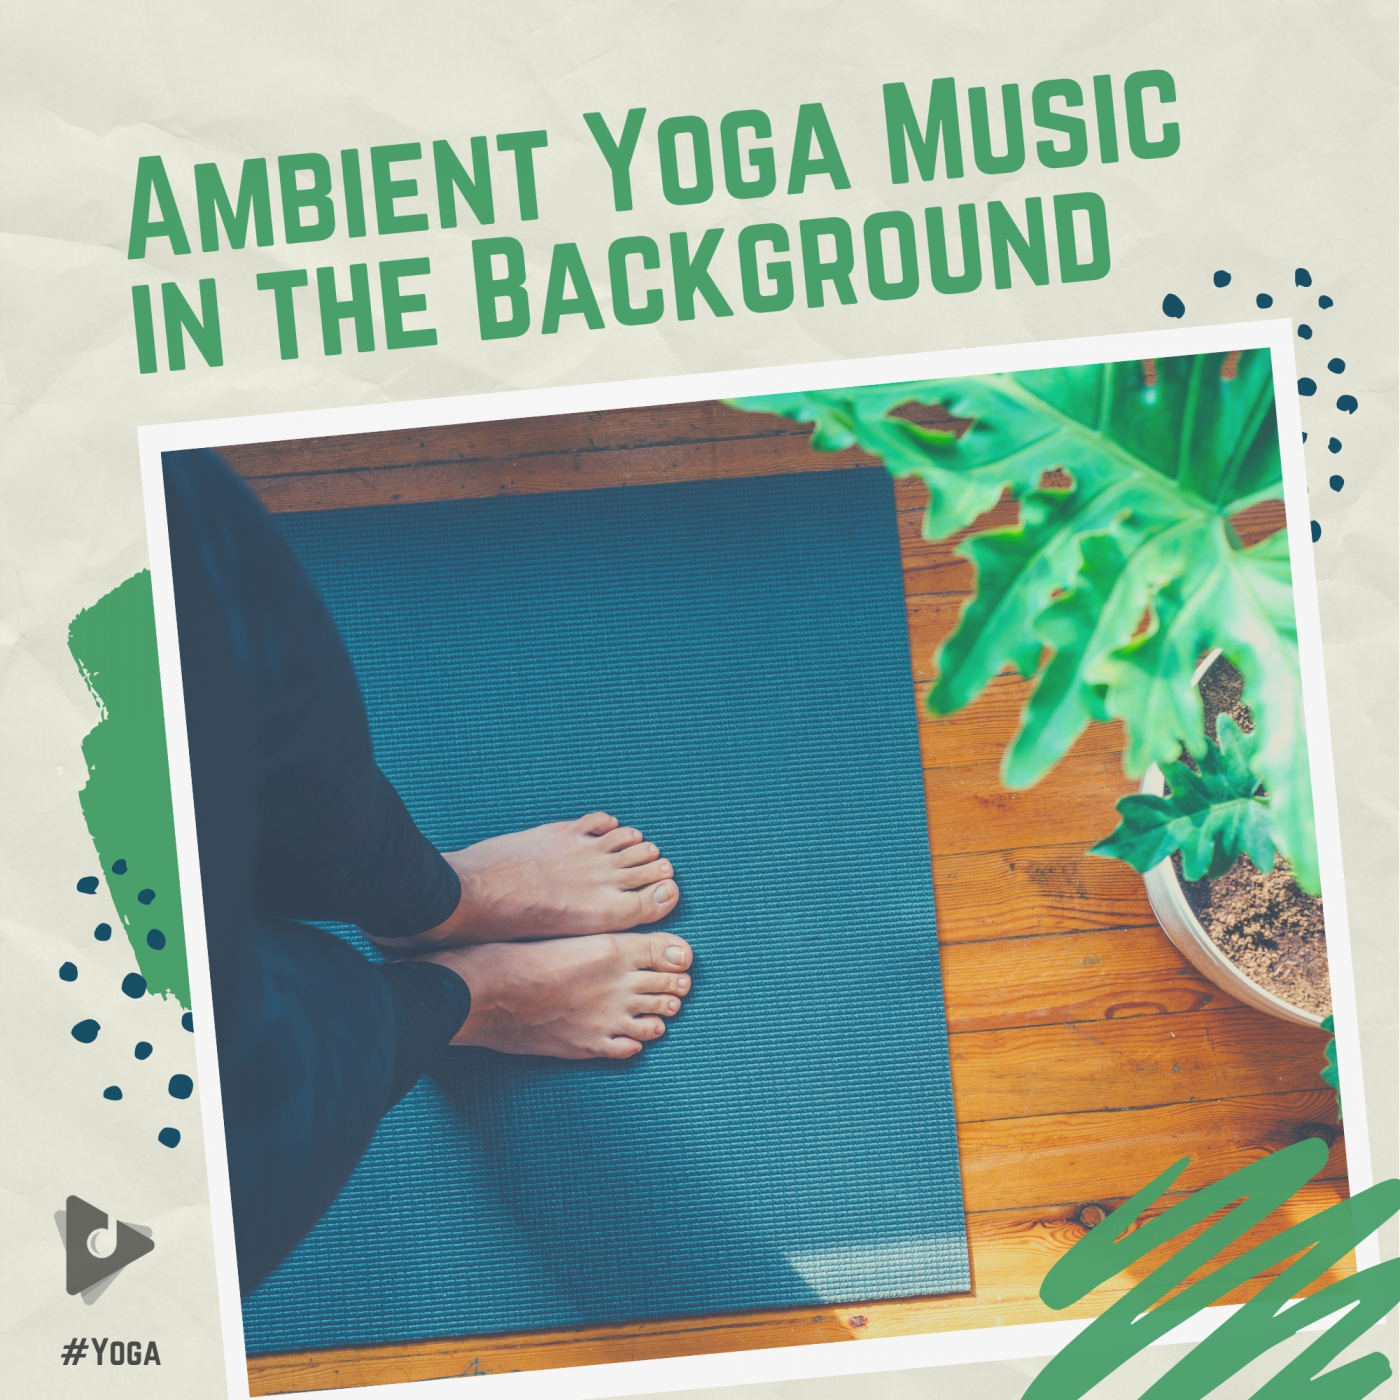 Ambient Yoga Music in the Background